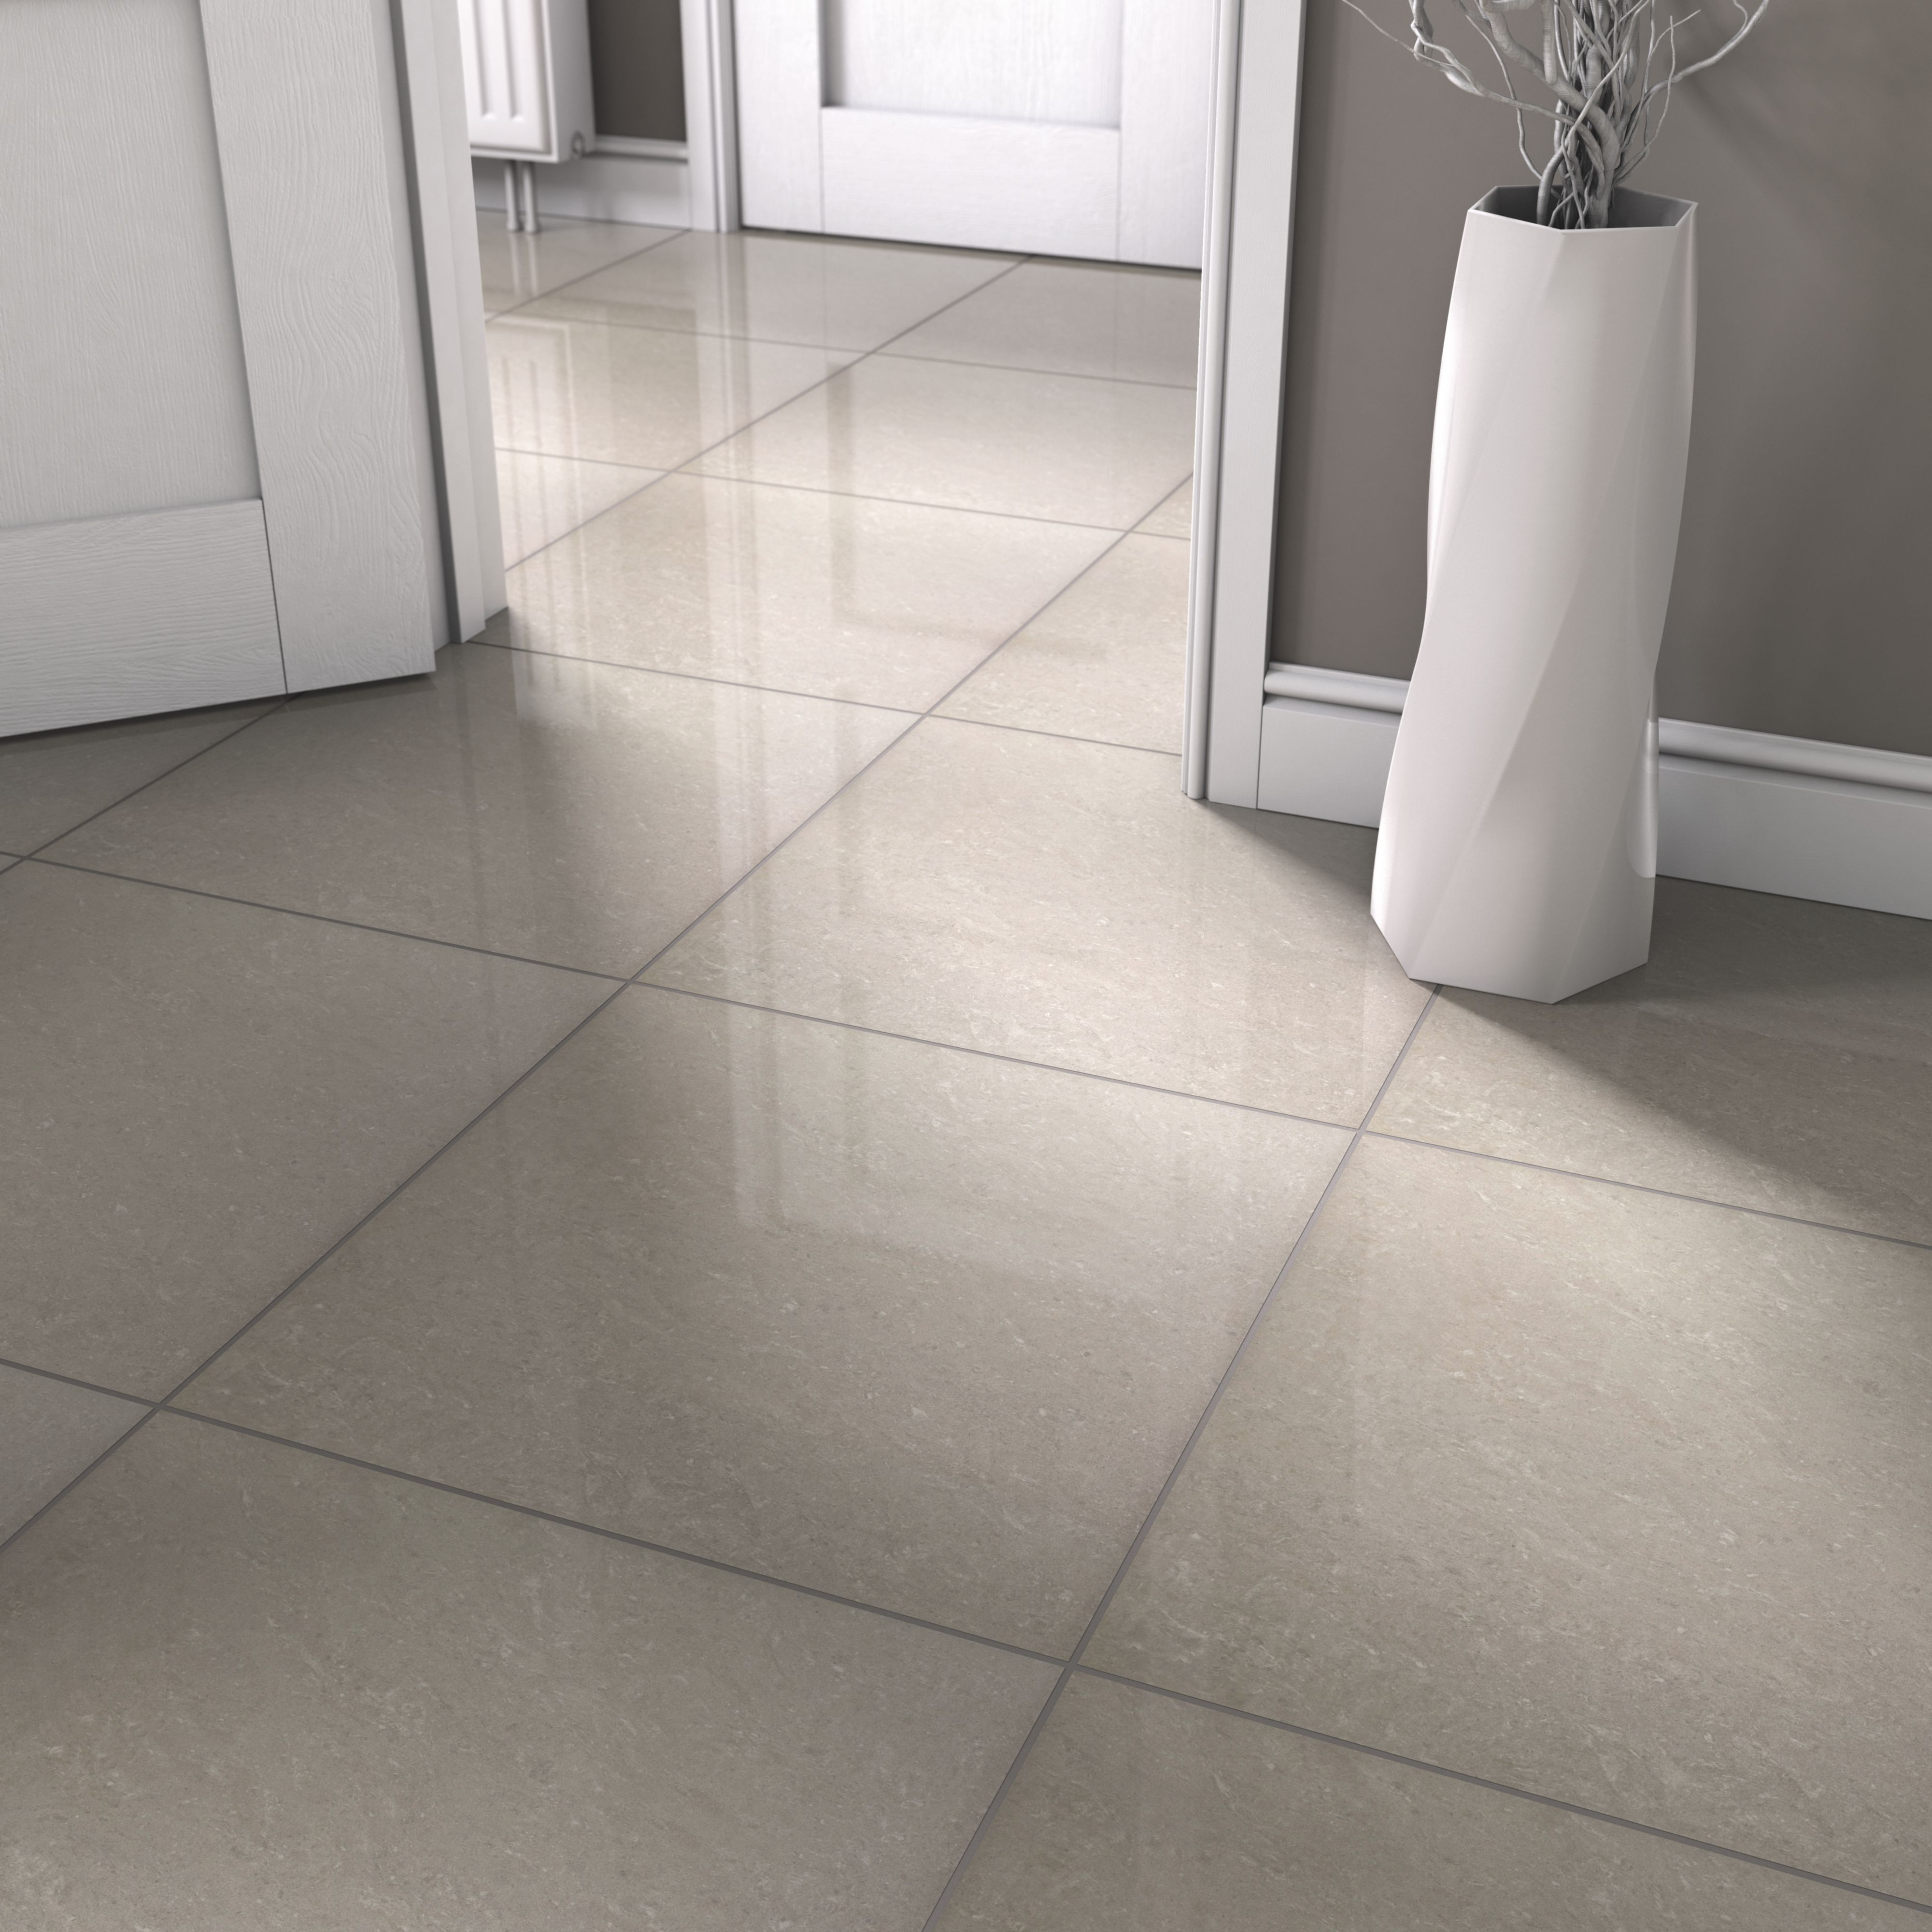 light wood floor coverings desktop grey high sabbia collections and tiles wall porcelain floors legni rovere effect tech